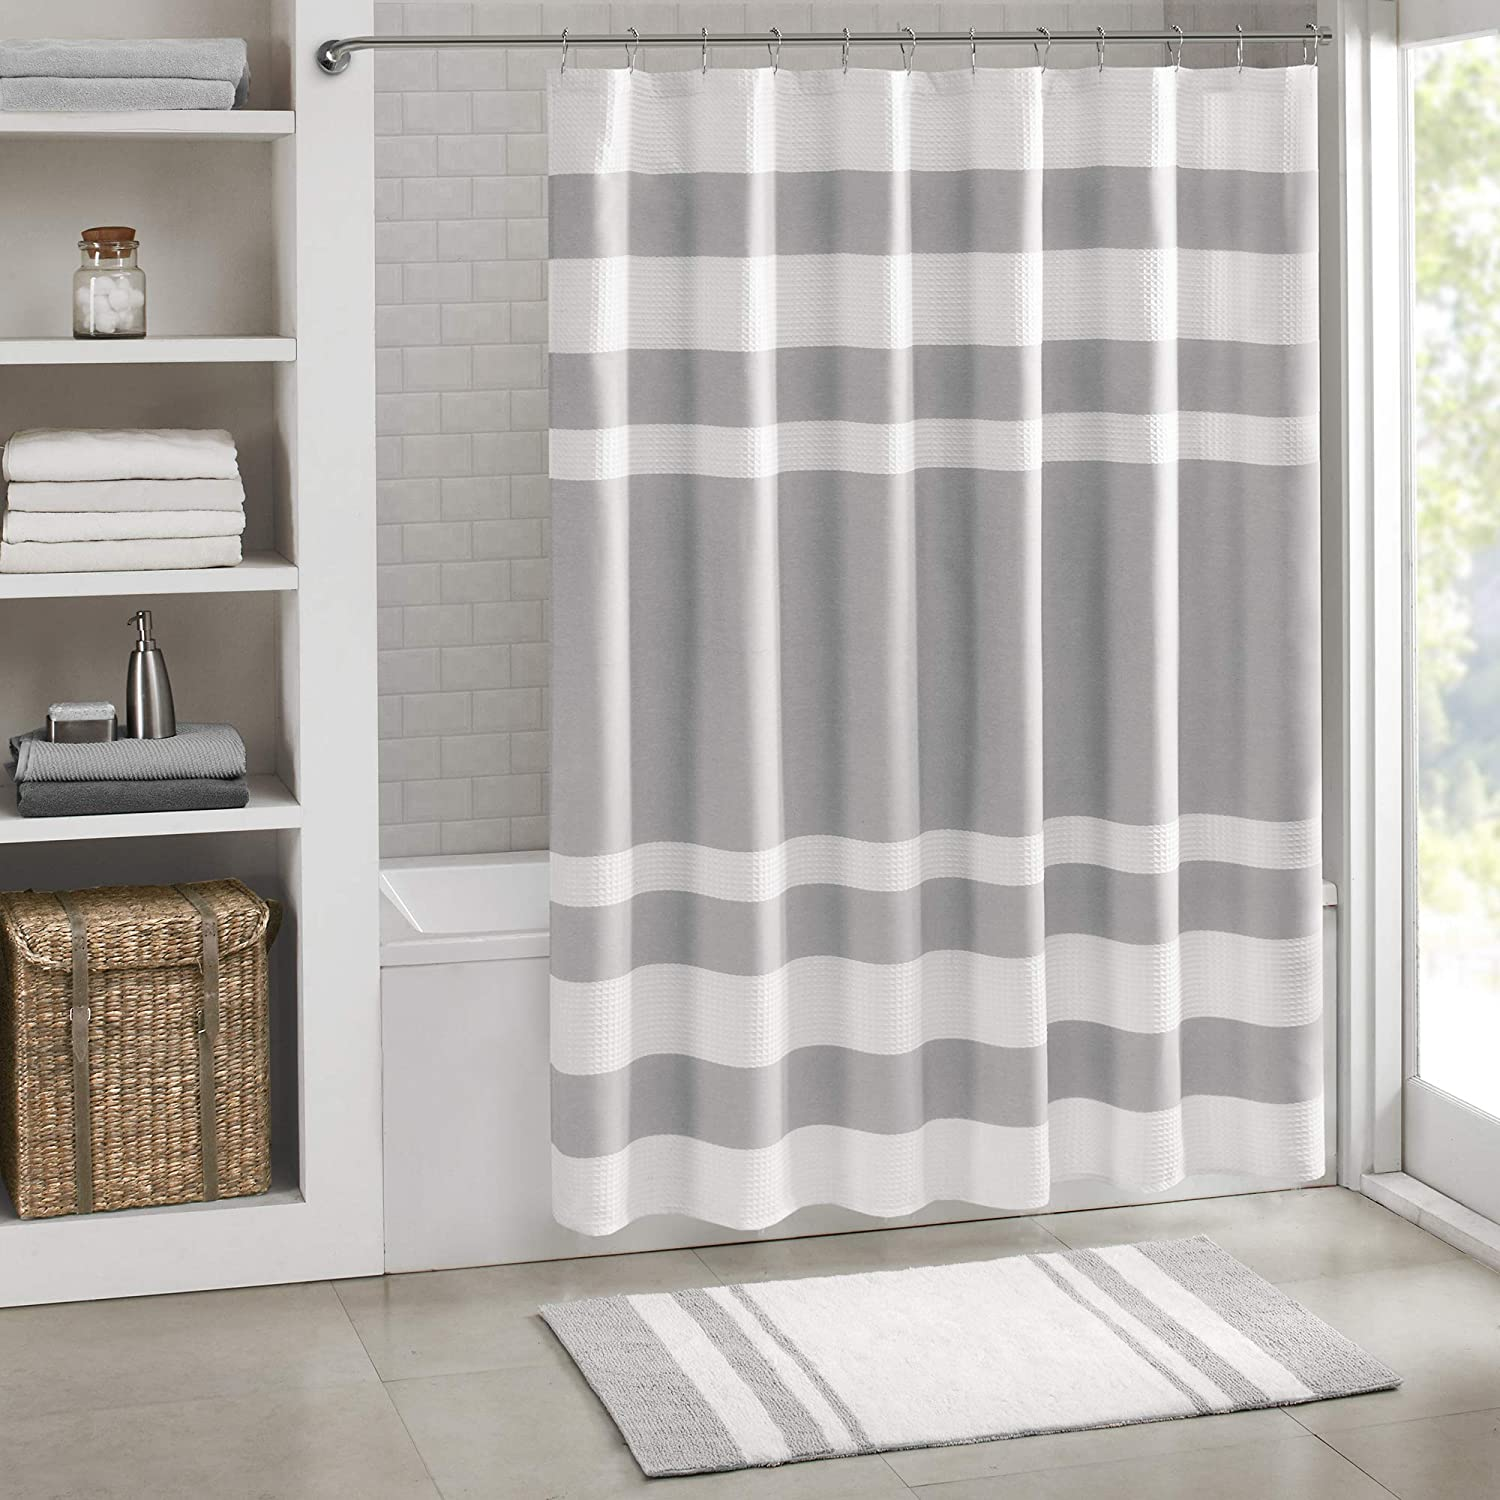 Madison Park Spa Waffle Shower Curtain Pieced Solid Microfiber Fabric